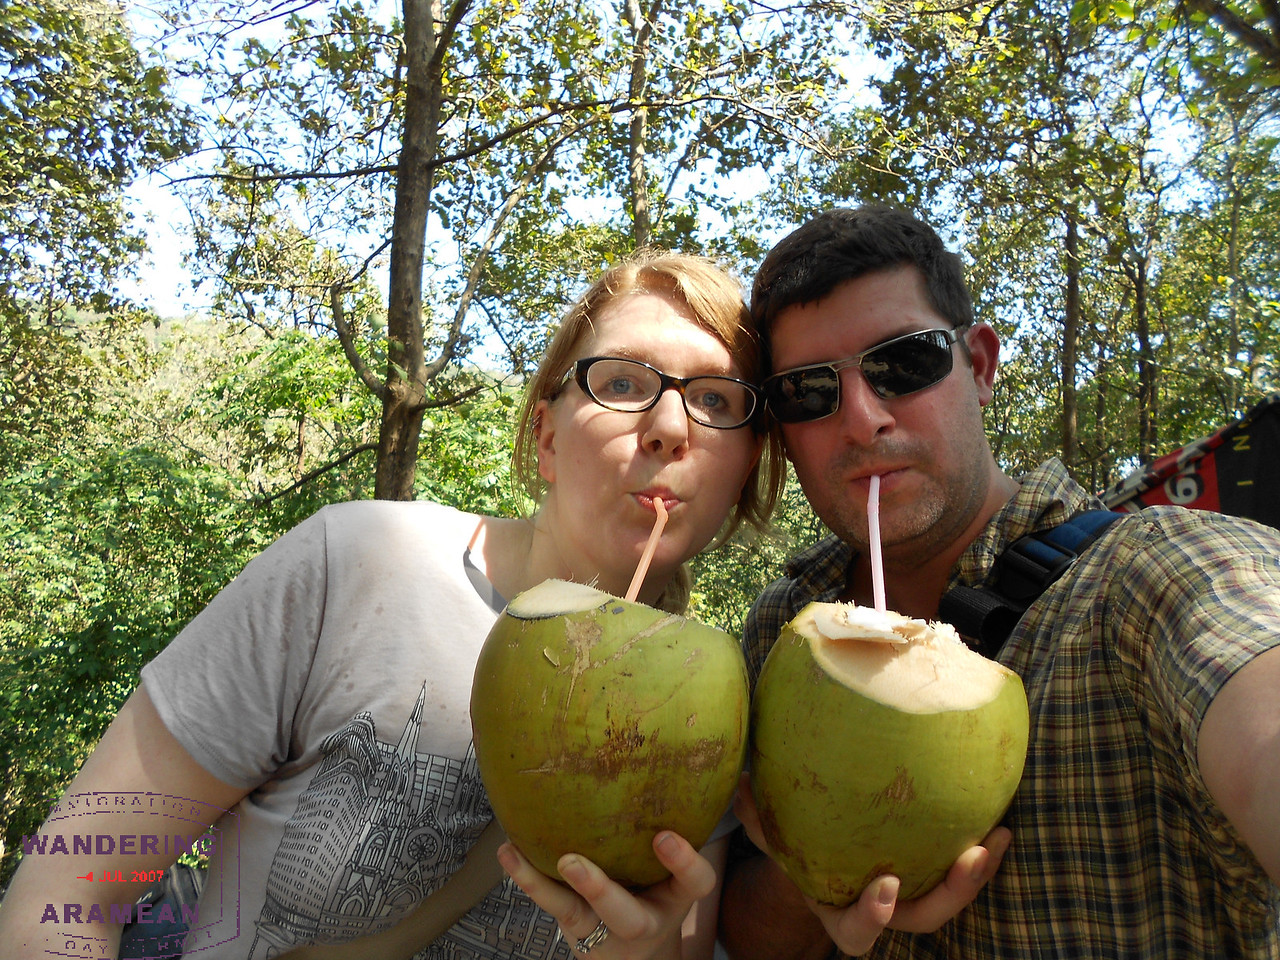 Enjoying some fresh coconut water after hiking the falls